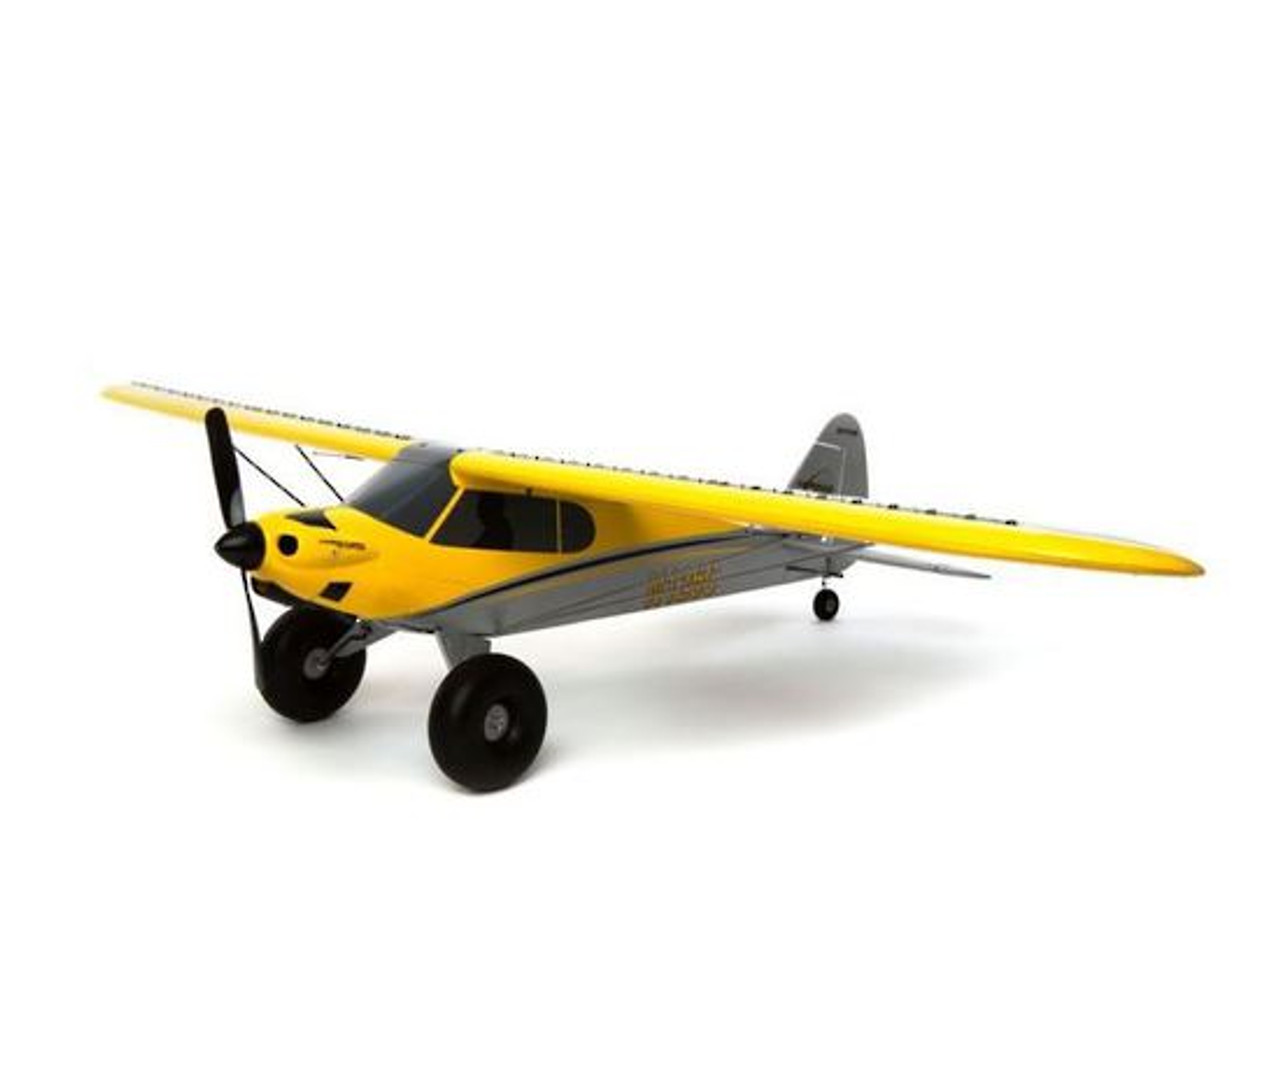 HobbyZone HBZ3200 Carbon Cub S+ 1 3m RTF with GPS Drone Technology